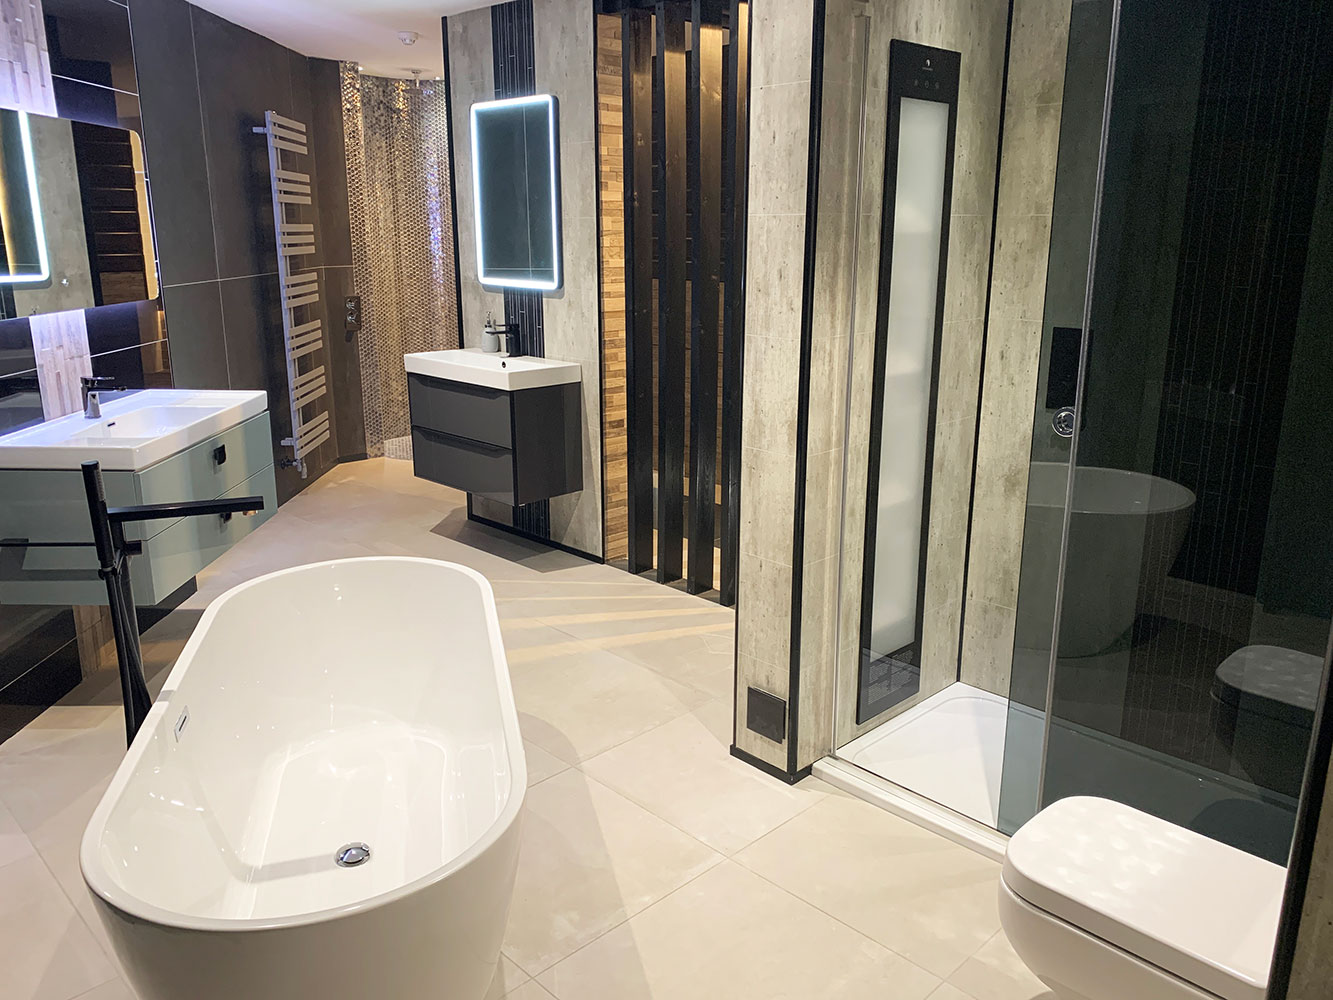 Bathroom Showroom Aberdeen: Bathroom Gallery 7, Photo 1